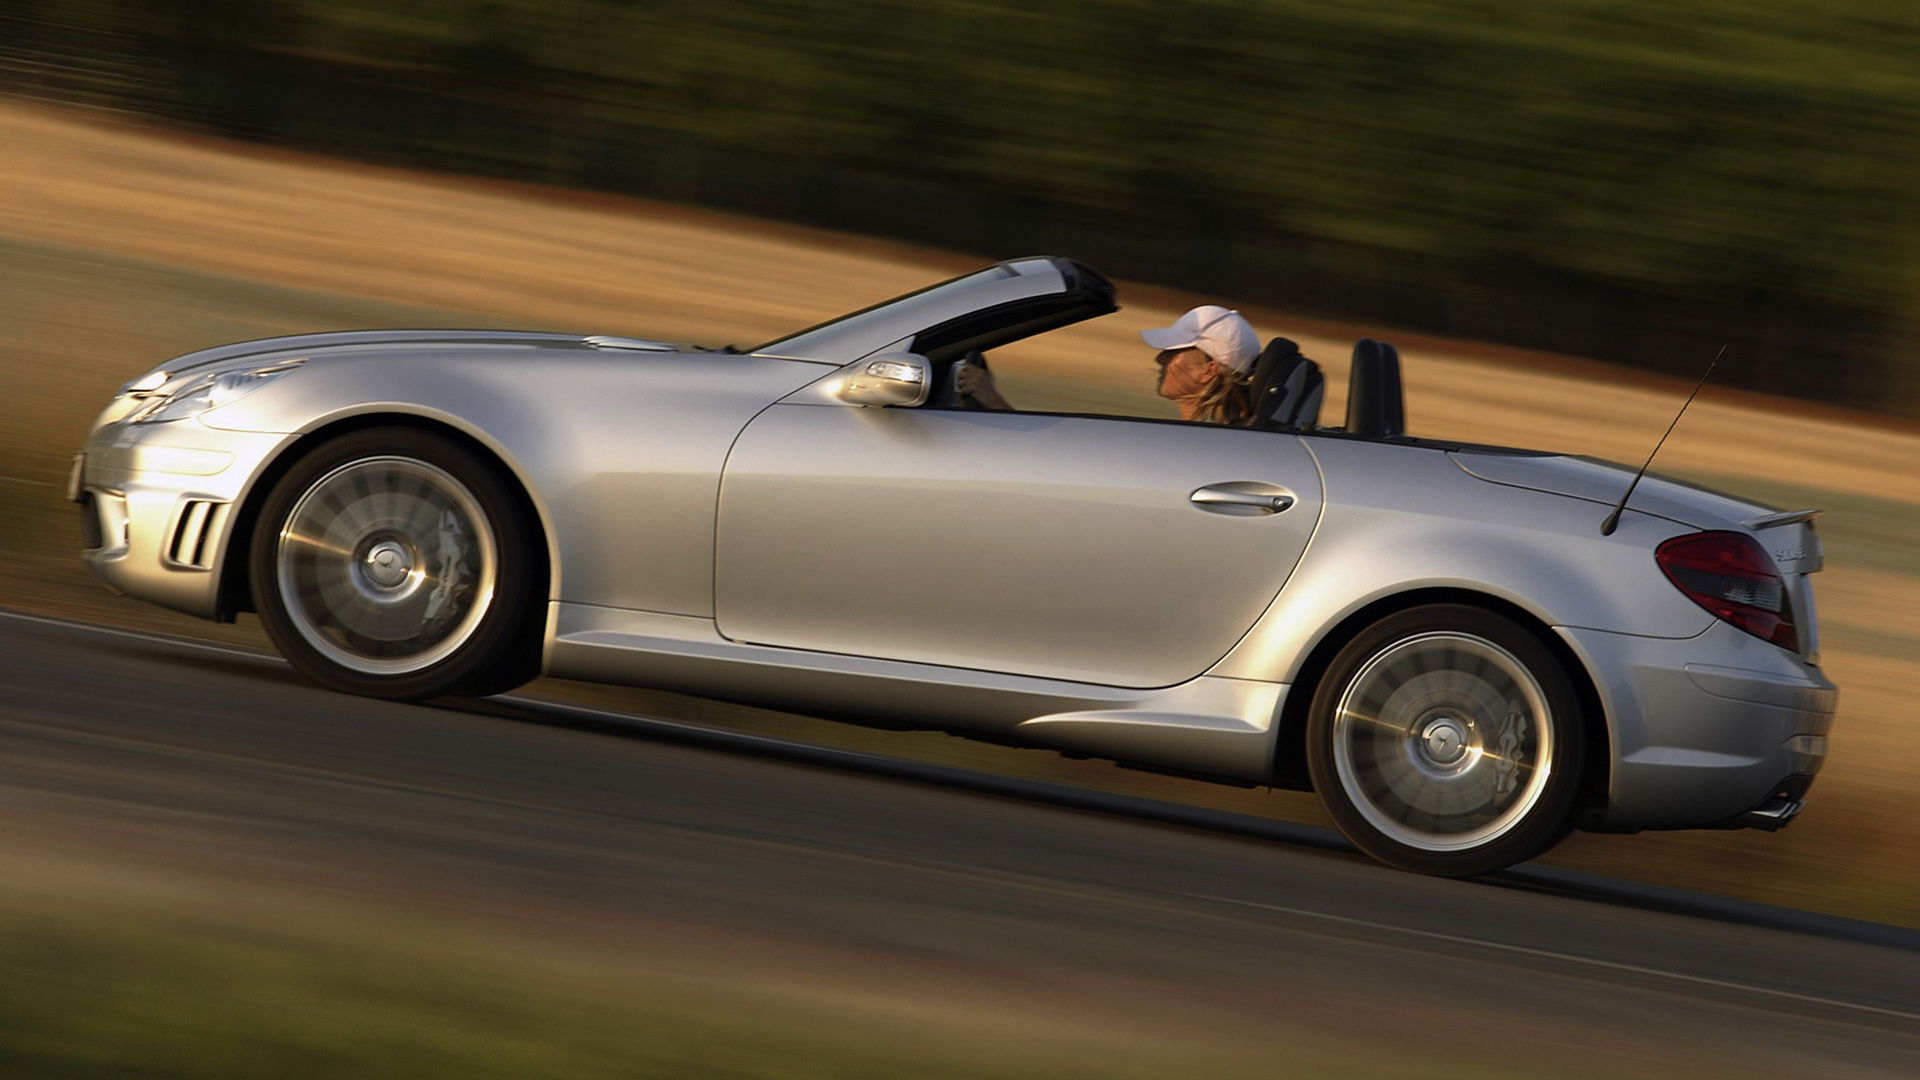 Mercedes benz slk 55 amg 2004 wallpapers and hd images for Mercedes benz slk 55 amg special edition